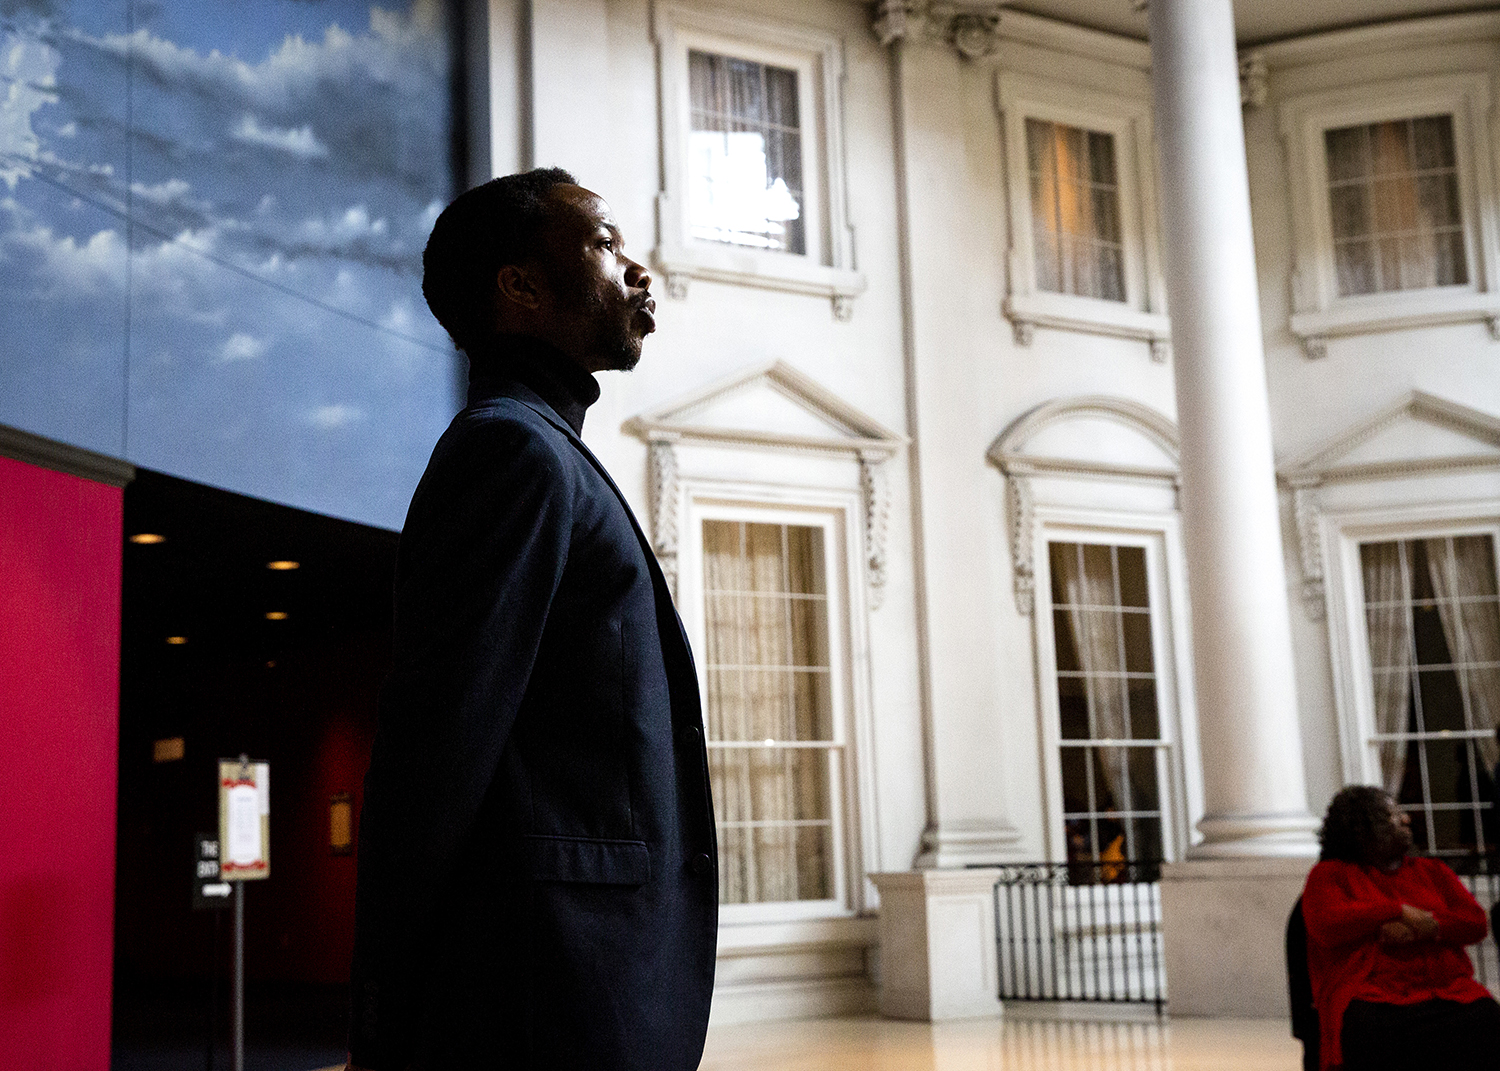 """Reggie Guyton, an actor at the Abraham Lincoln Presidential Museum, prepares to deliver Martin Luther King Jr.'s """"I Have a Dream"""" speech during an event to celebrate King's legacy Monday, Jan. 21, 2019 in Springfield, Ill. King gave his famous speech, calling for civil and economic rights and end end to racism, on the steps of the Lincoln Memorial in Washington, D.C. in August of 1963. [Rich Saal/The State Journal-Register]"""